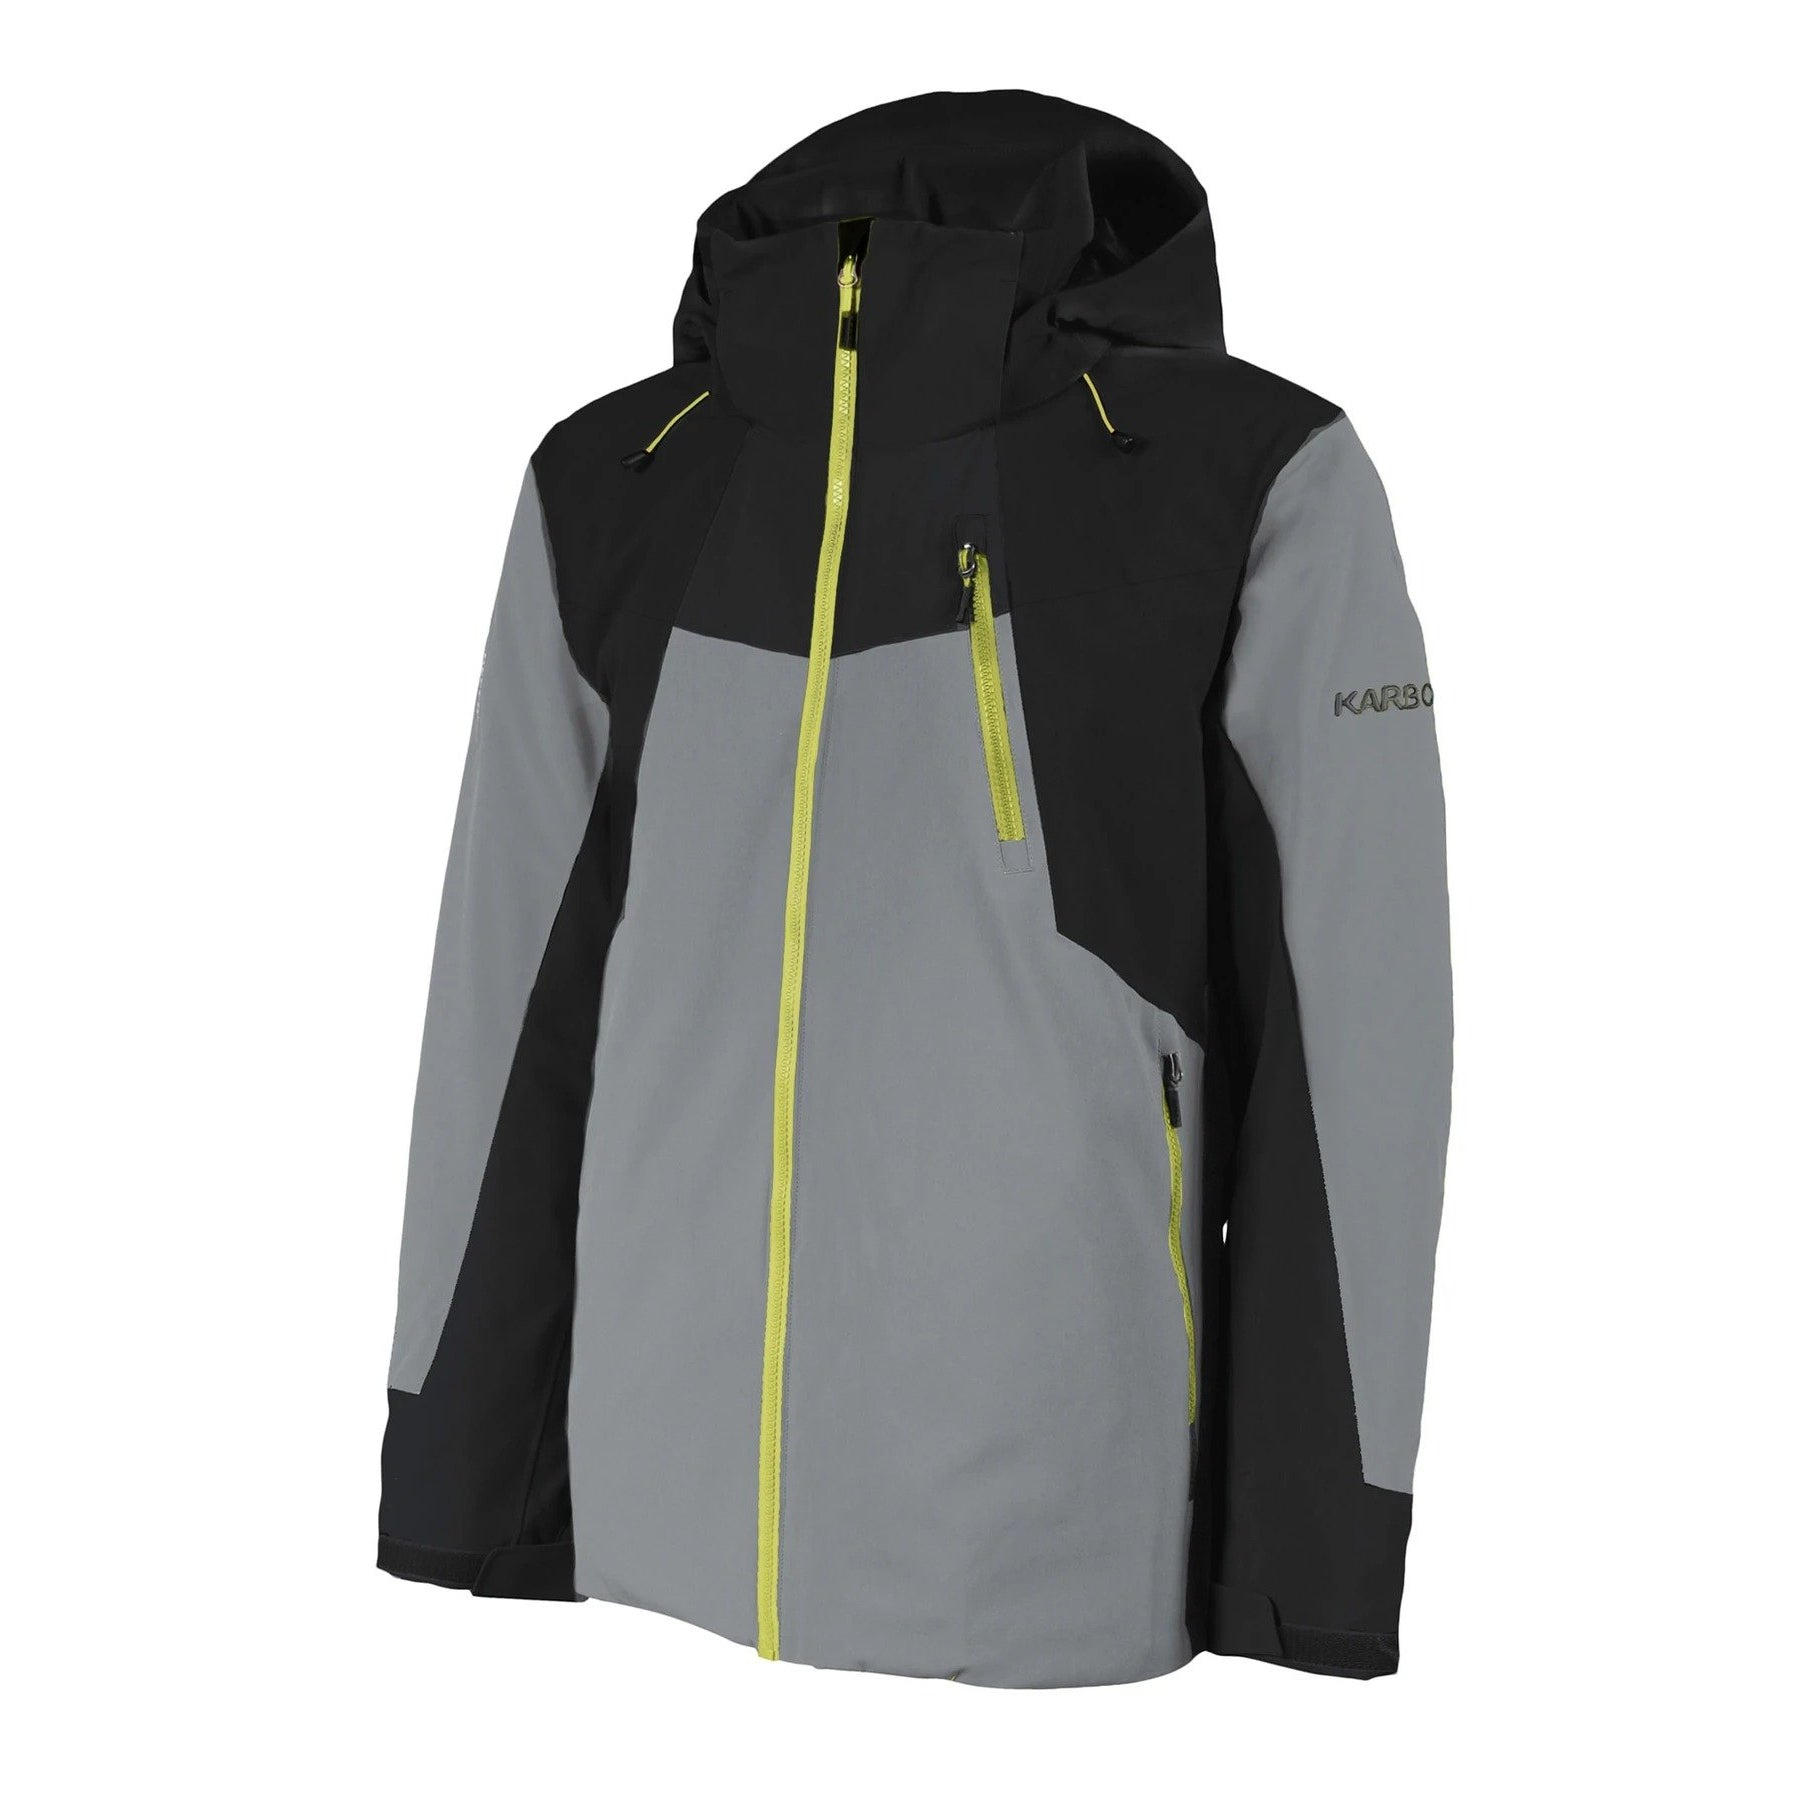 Karbon 2021 Men's Cascade Jacket